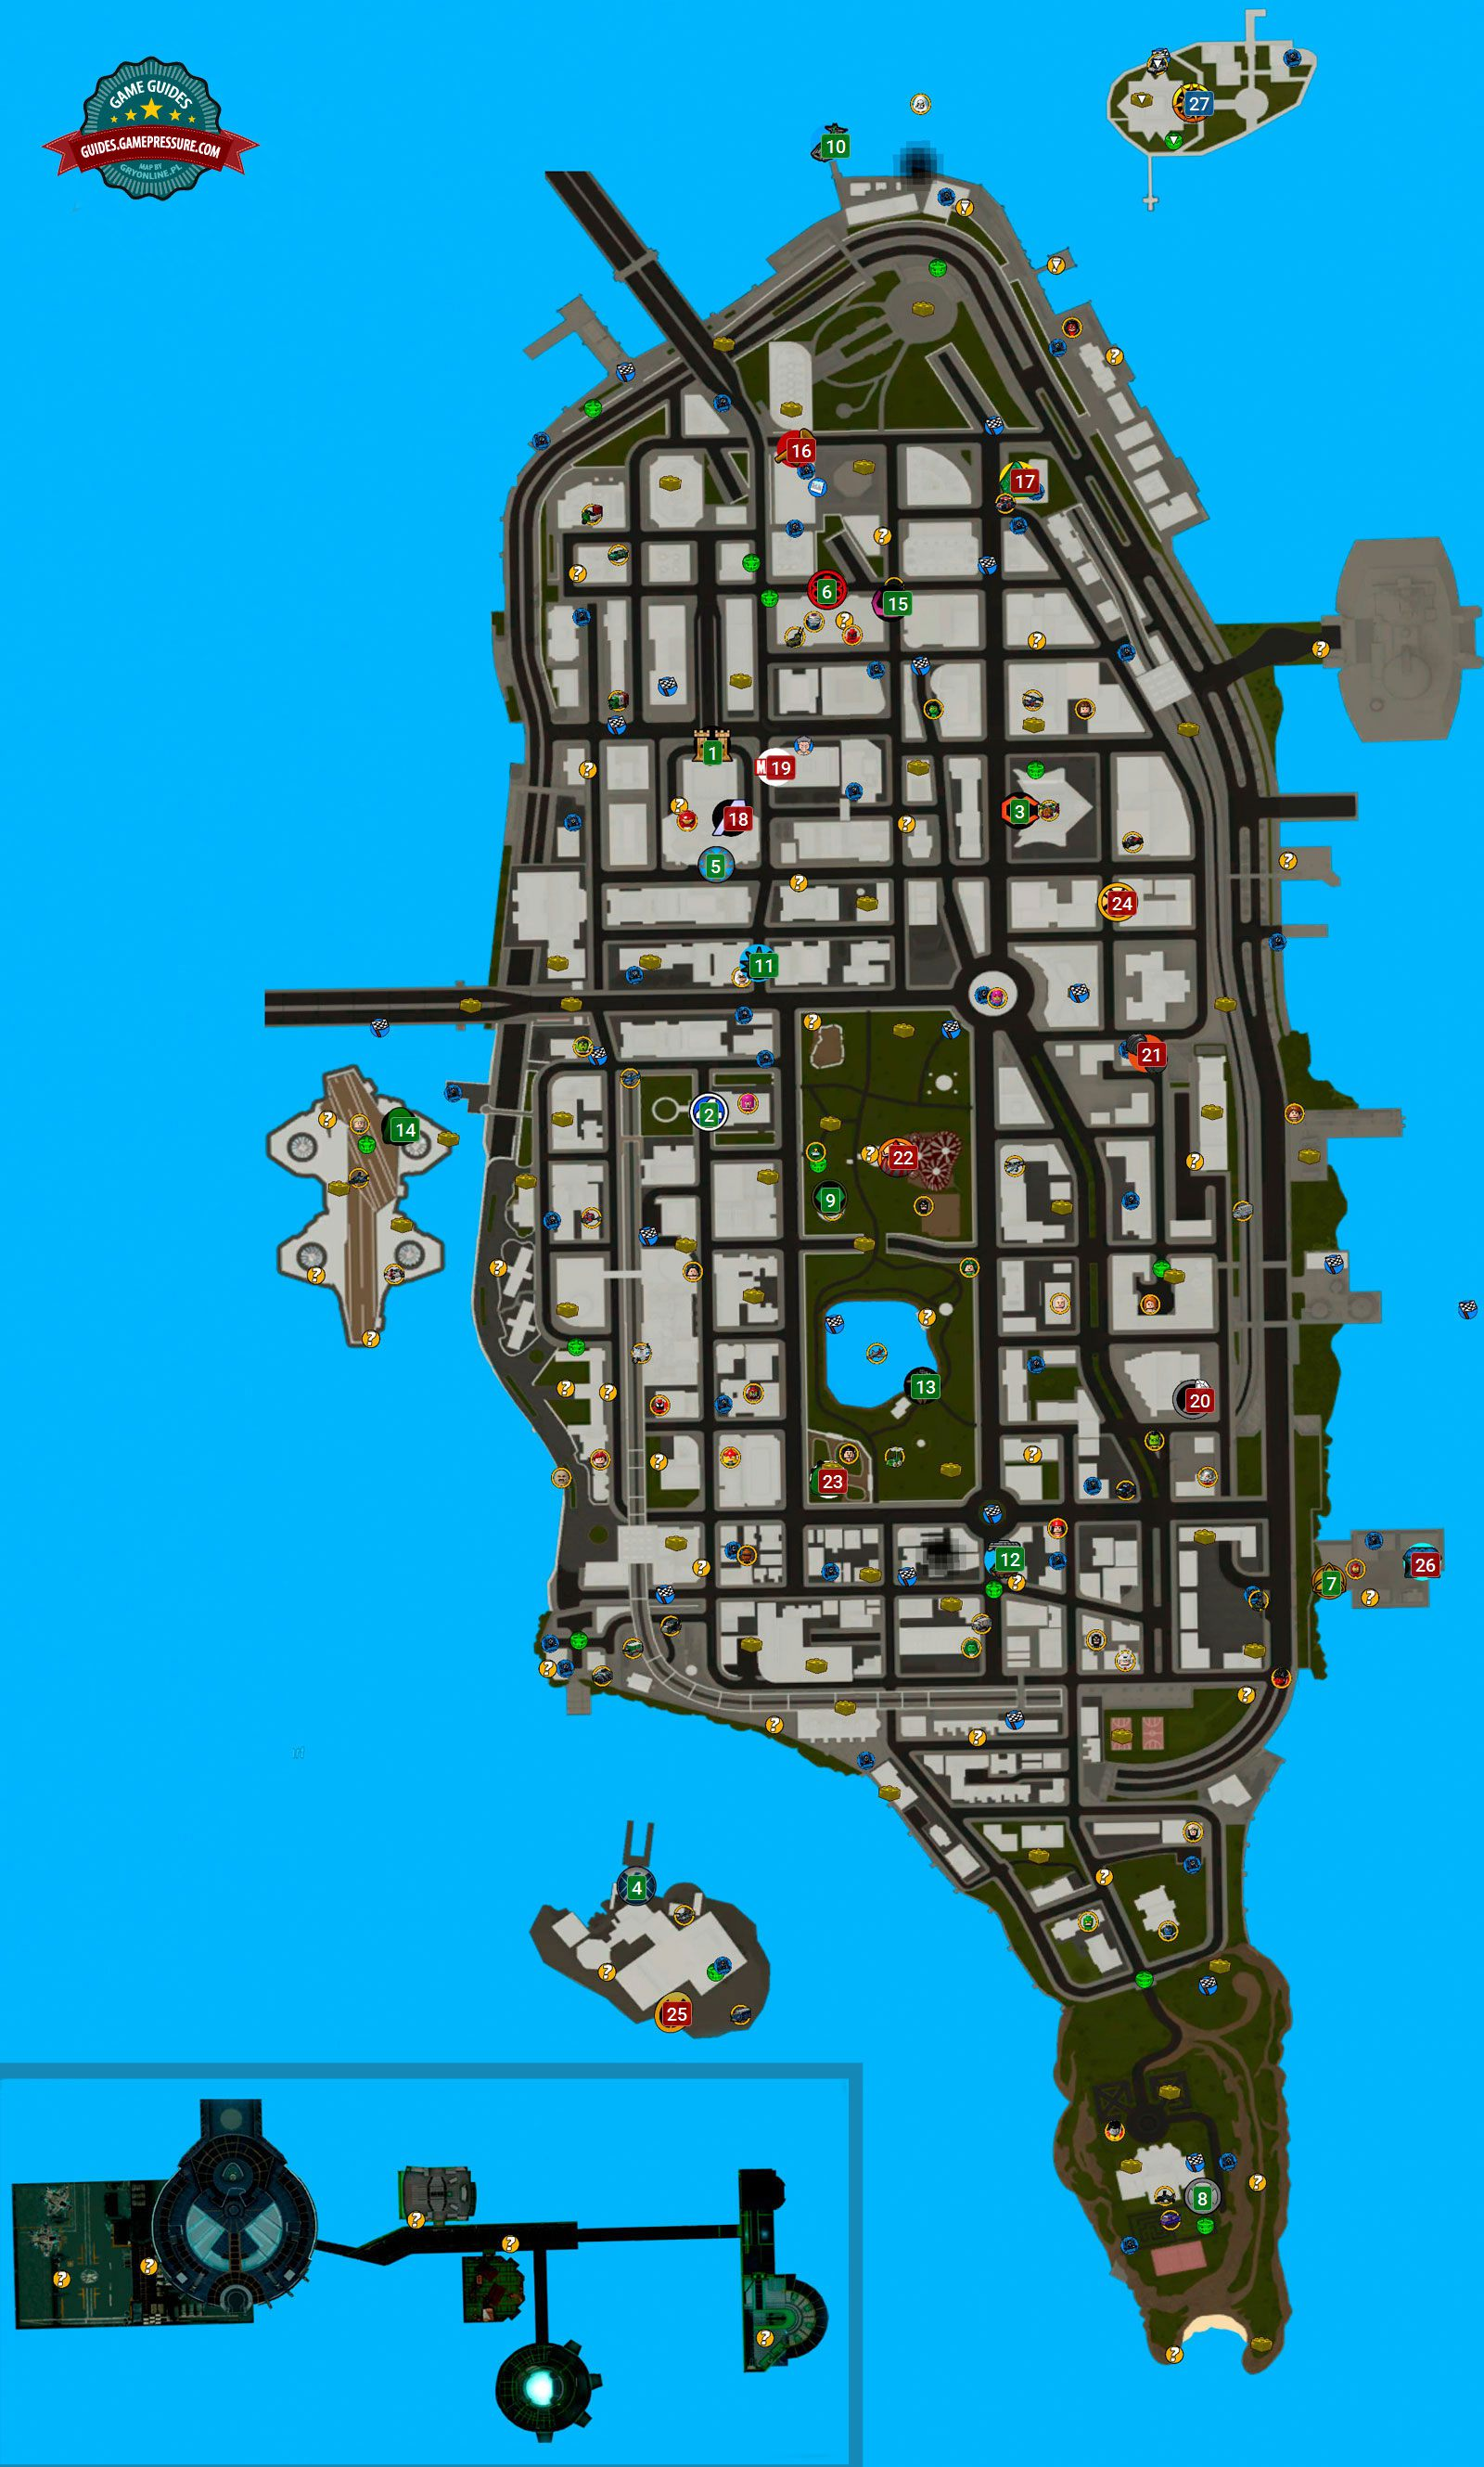 LEGO Marvel Super Heroes Map - Important Locations